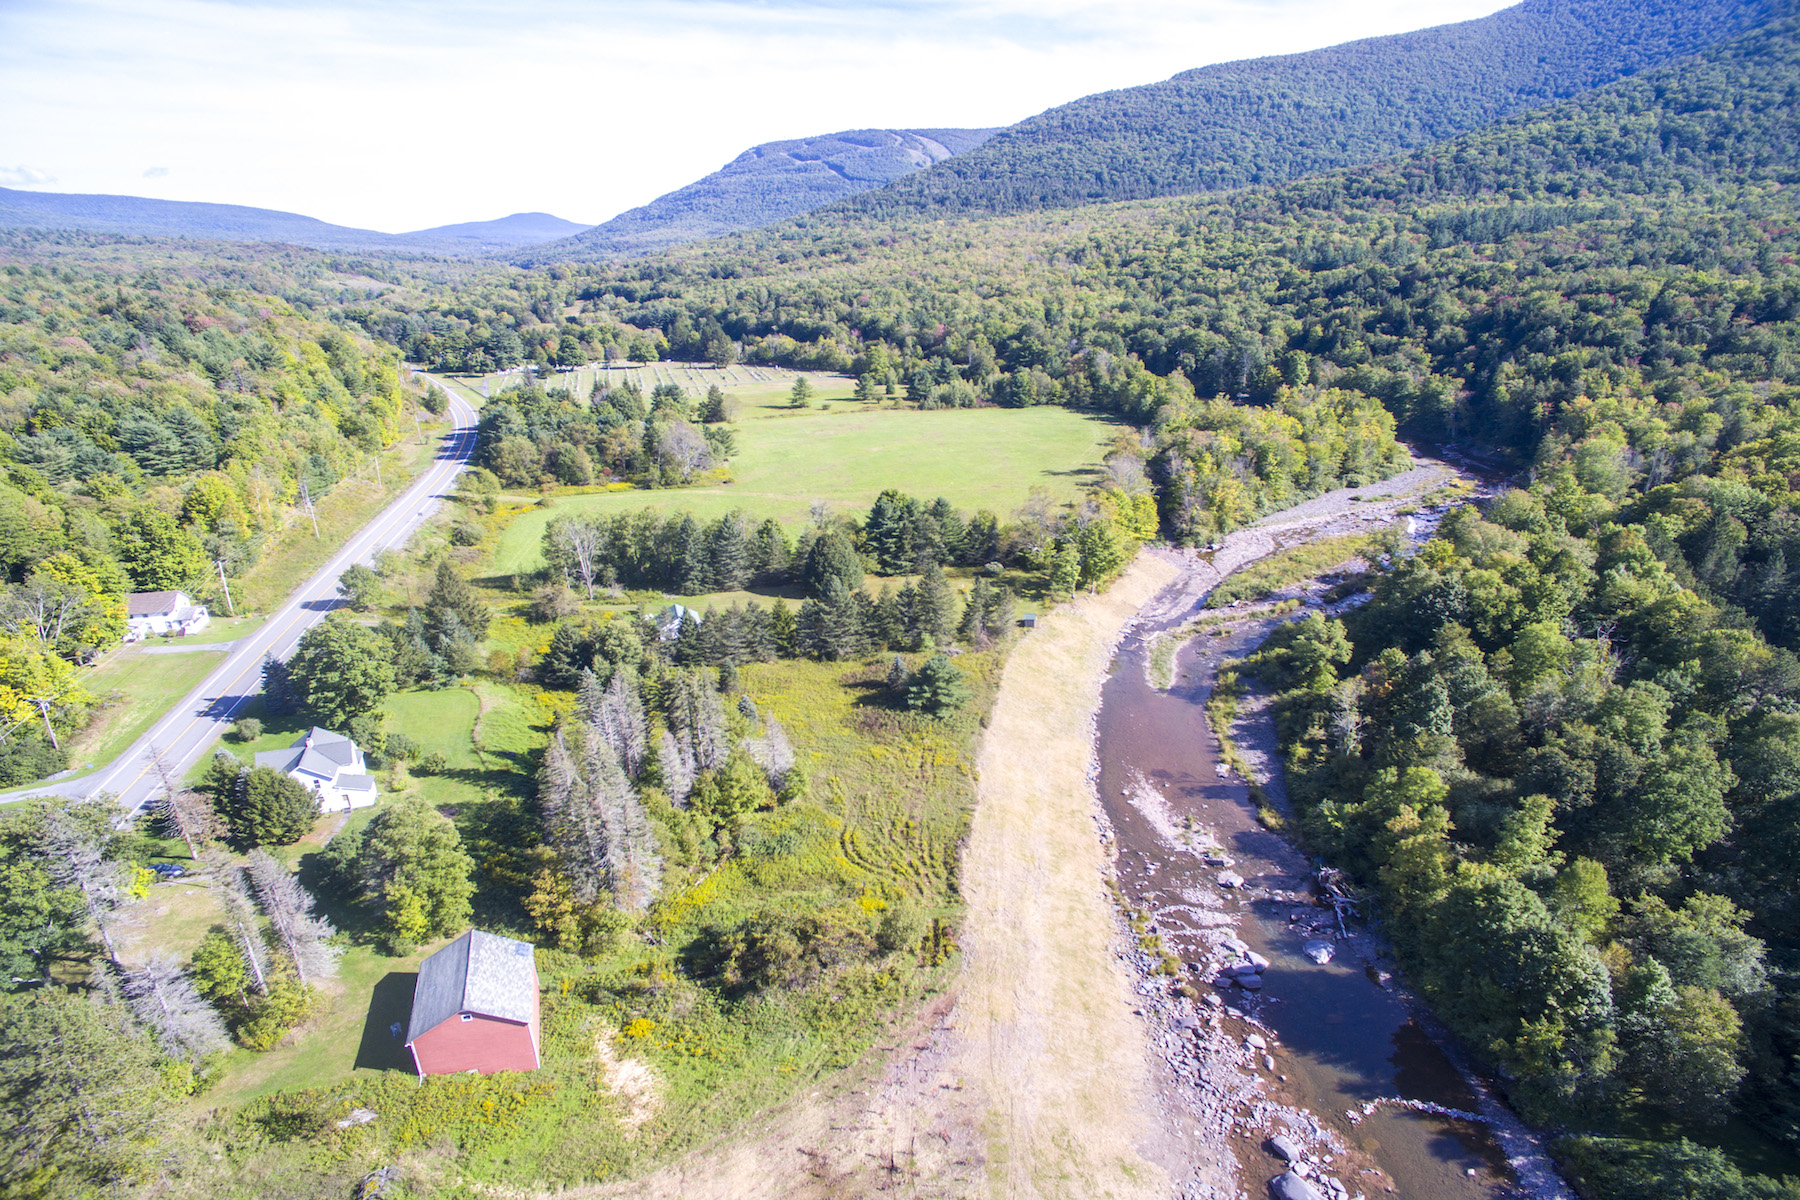 Maison unifamiliale pour l Vente à Farm House With Incredible View of Schoharie Creek 9093 Route 23a Jewett, New York 12444 États-Unis